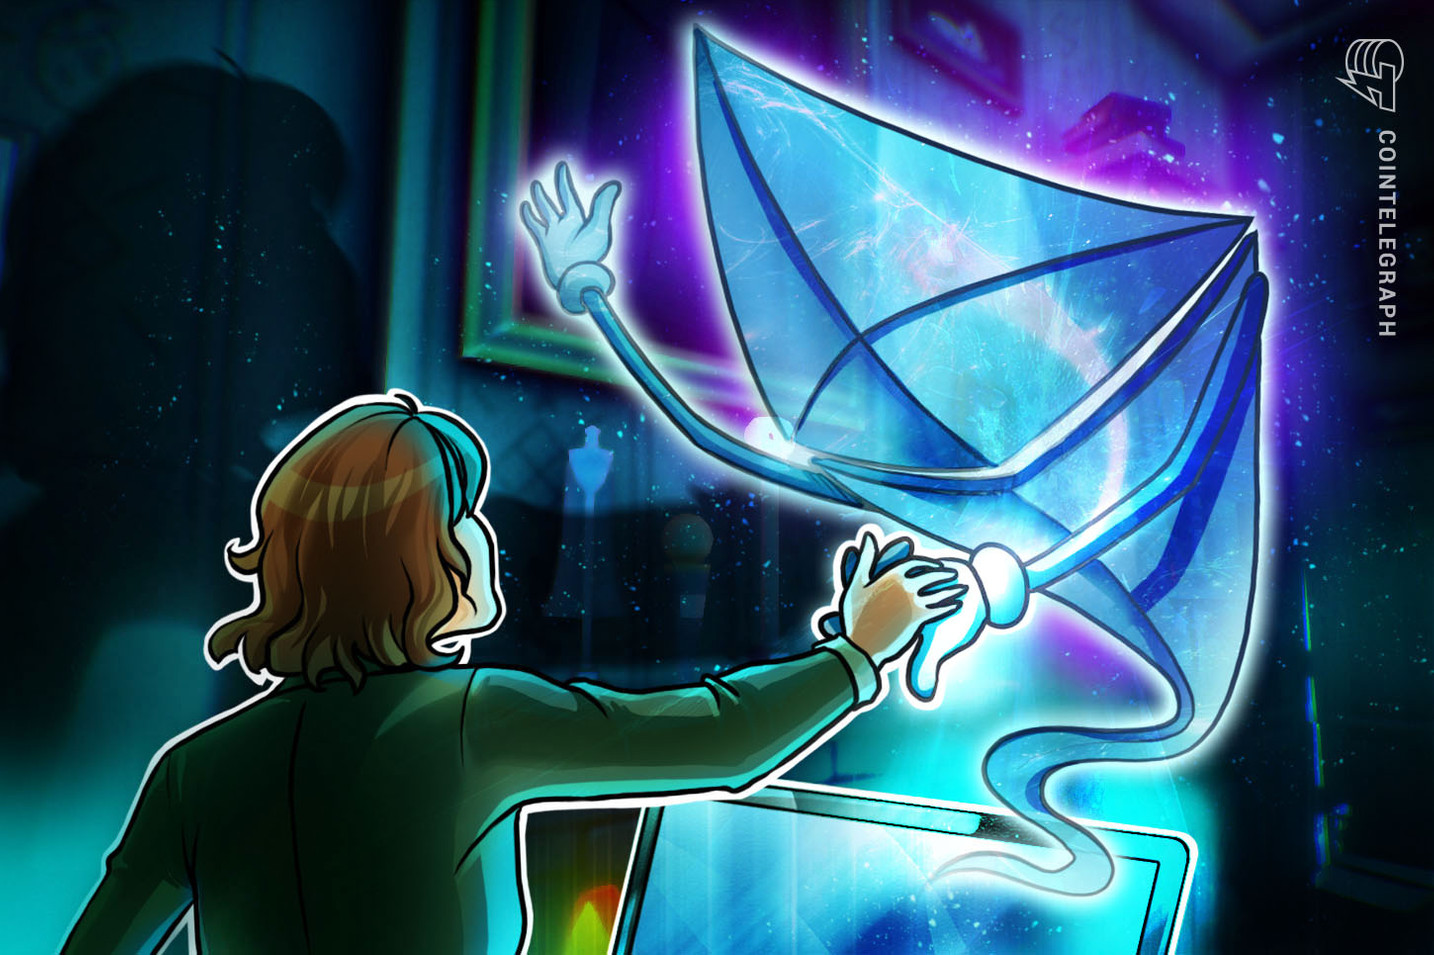 Casper: What Will the Upgrade Bring to the Ethereum's Network?